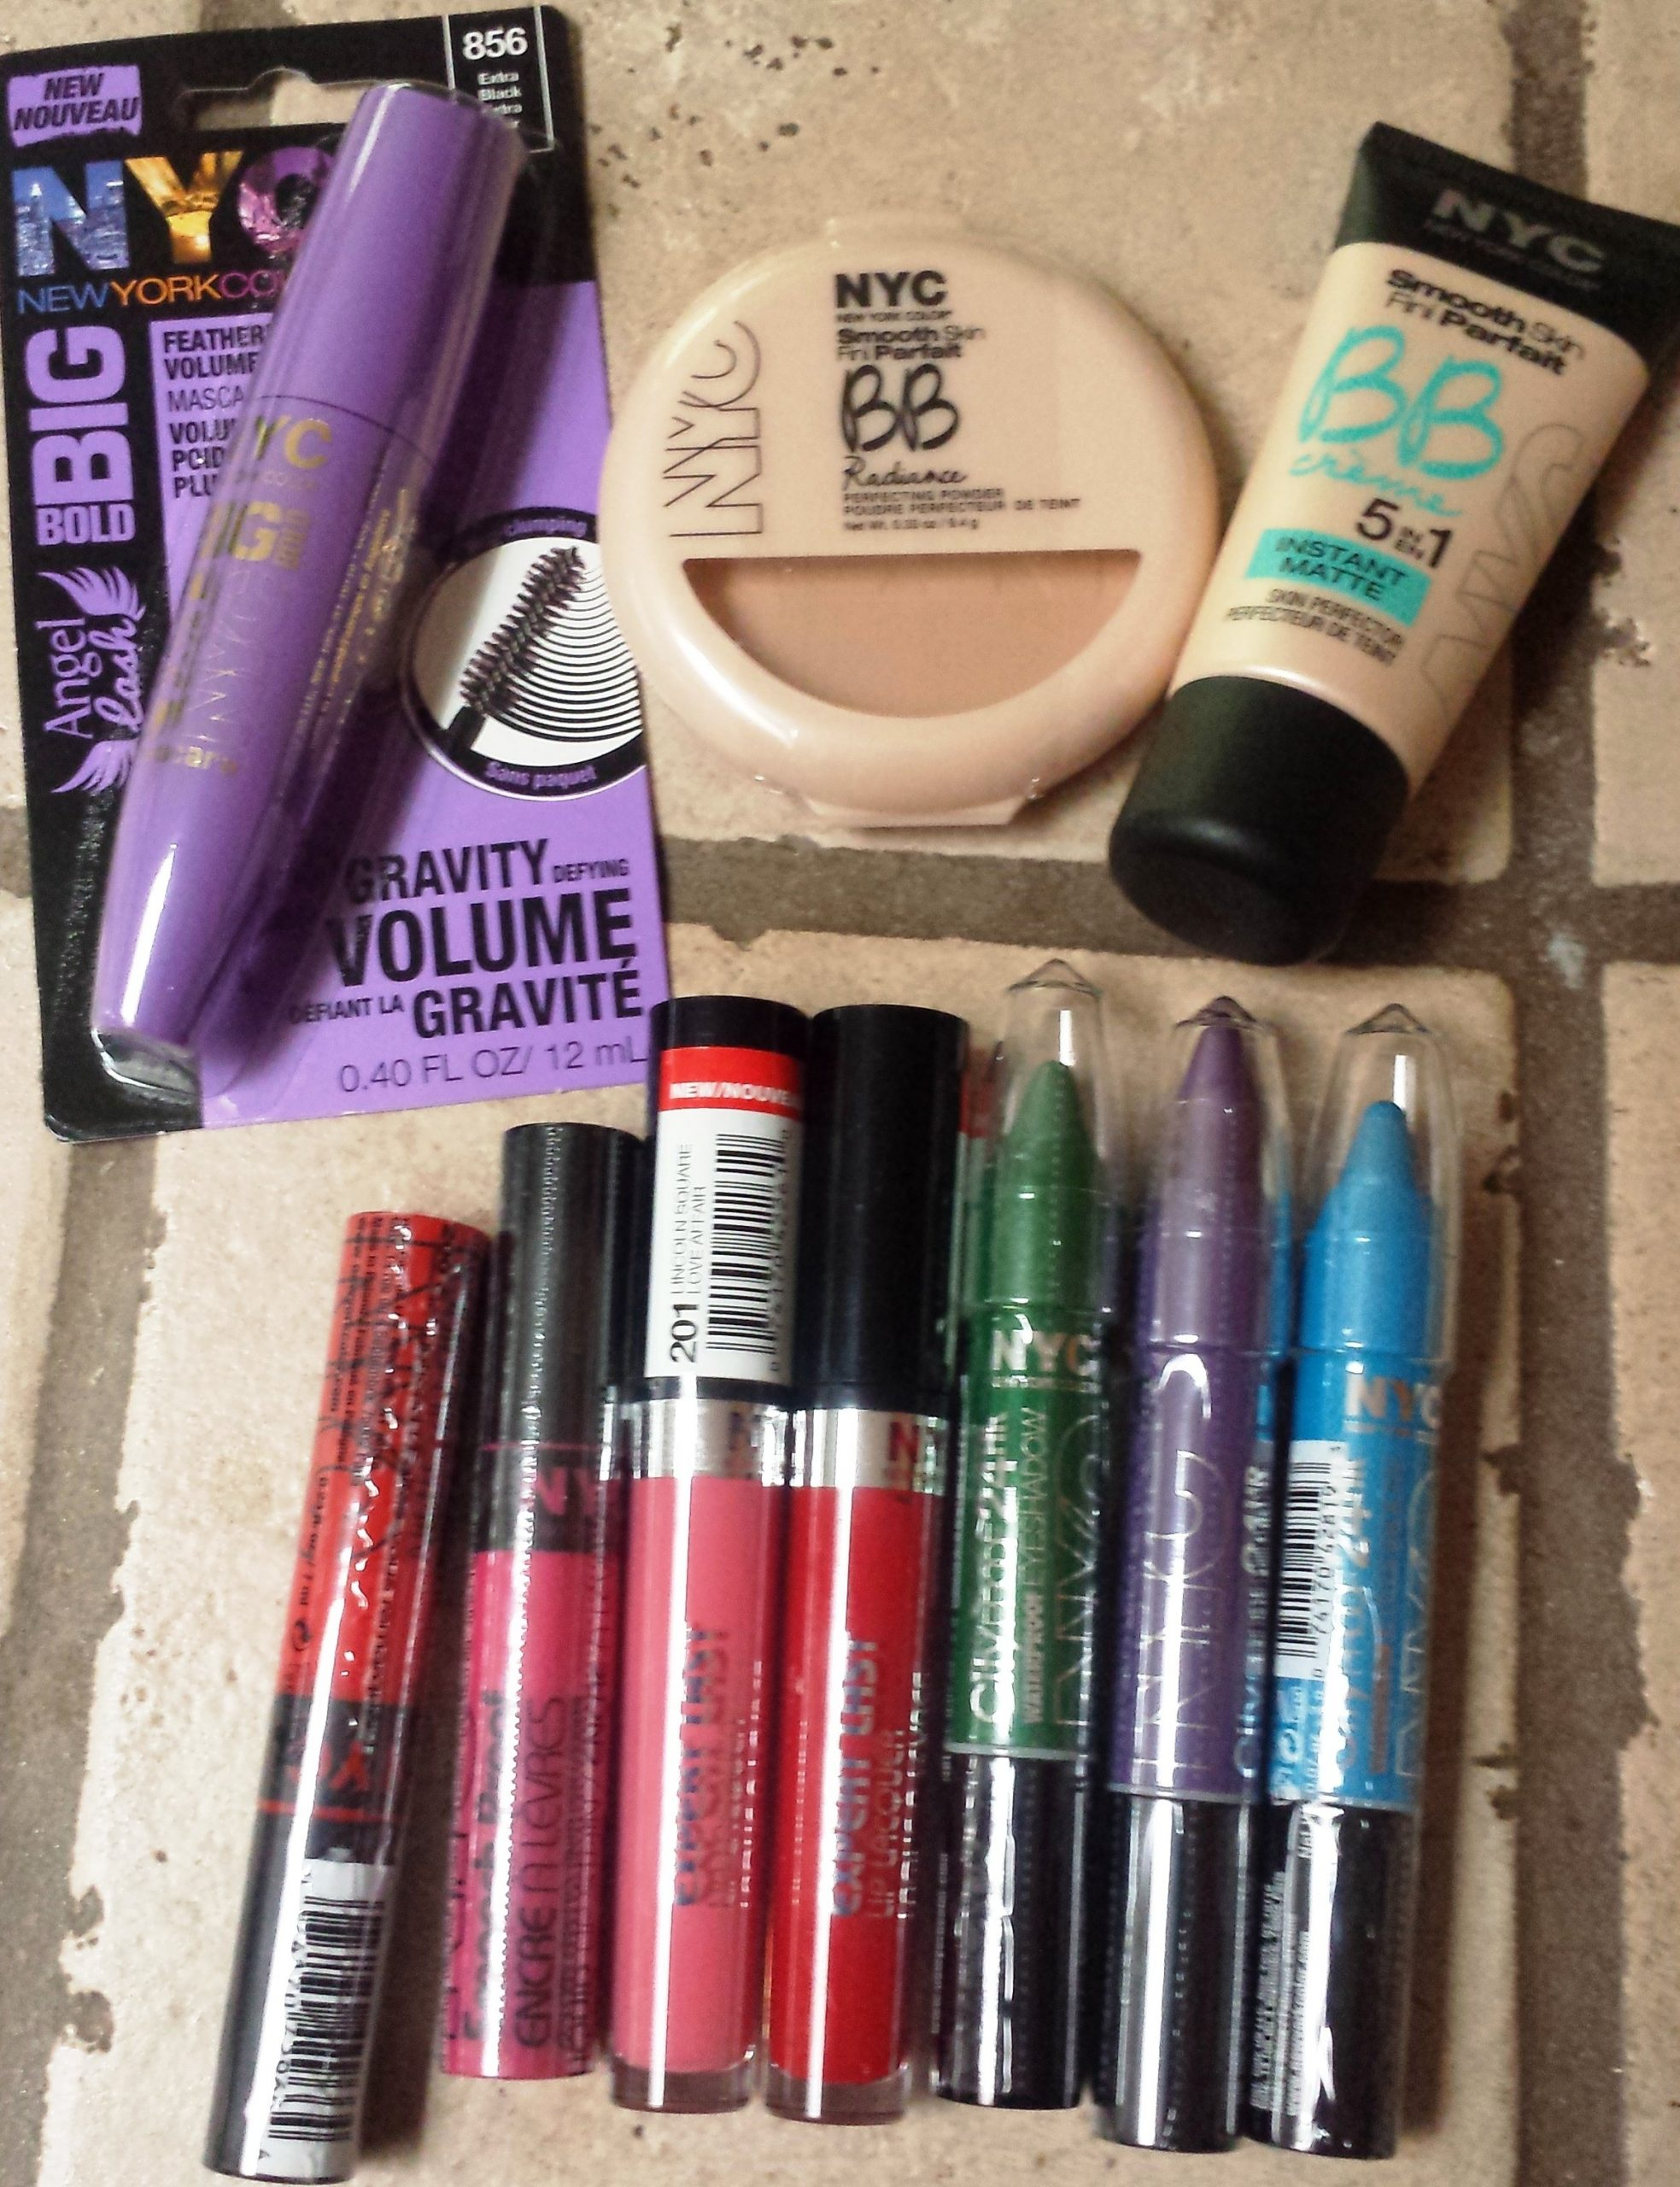 Cosmetics: Demi Lovato's Makeup Faves From NYC New York Color Help